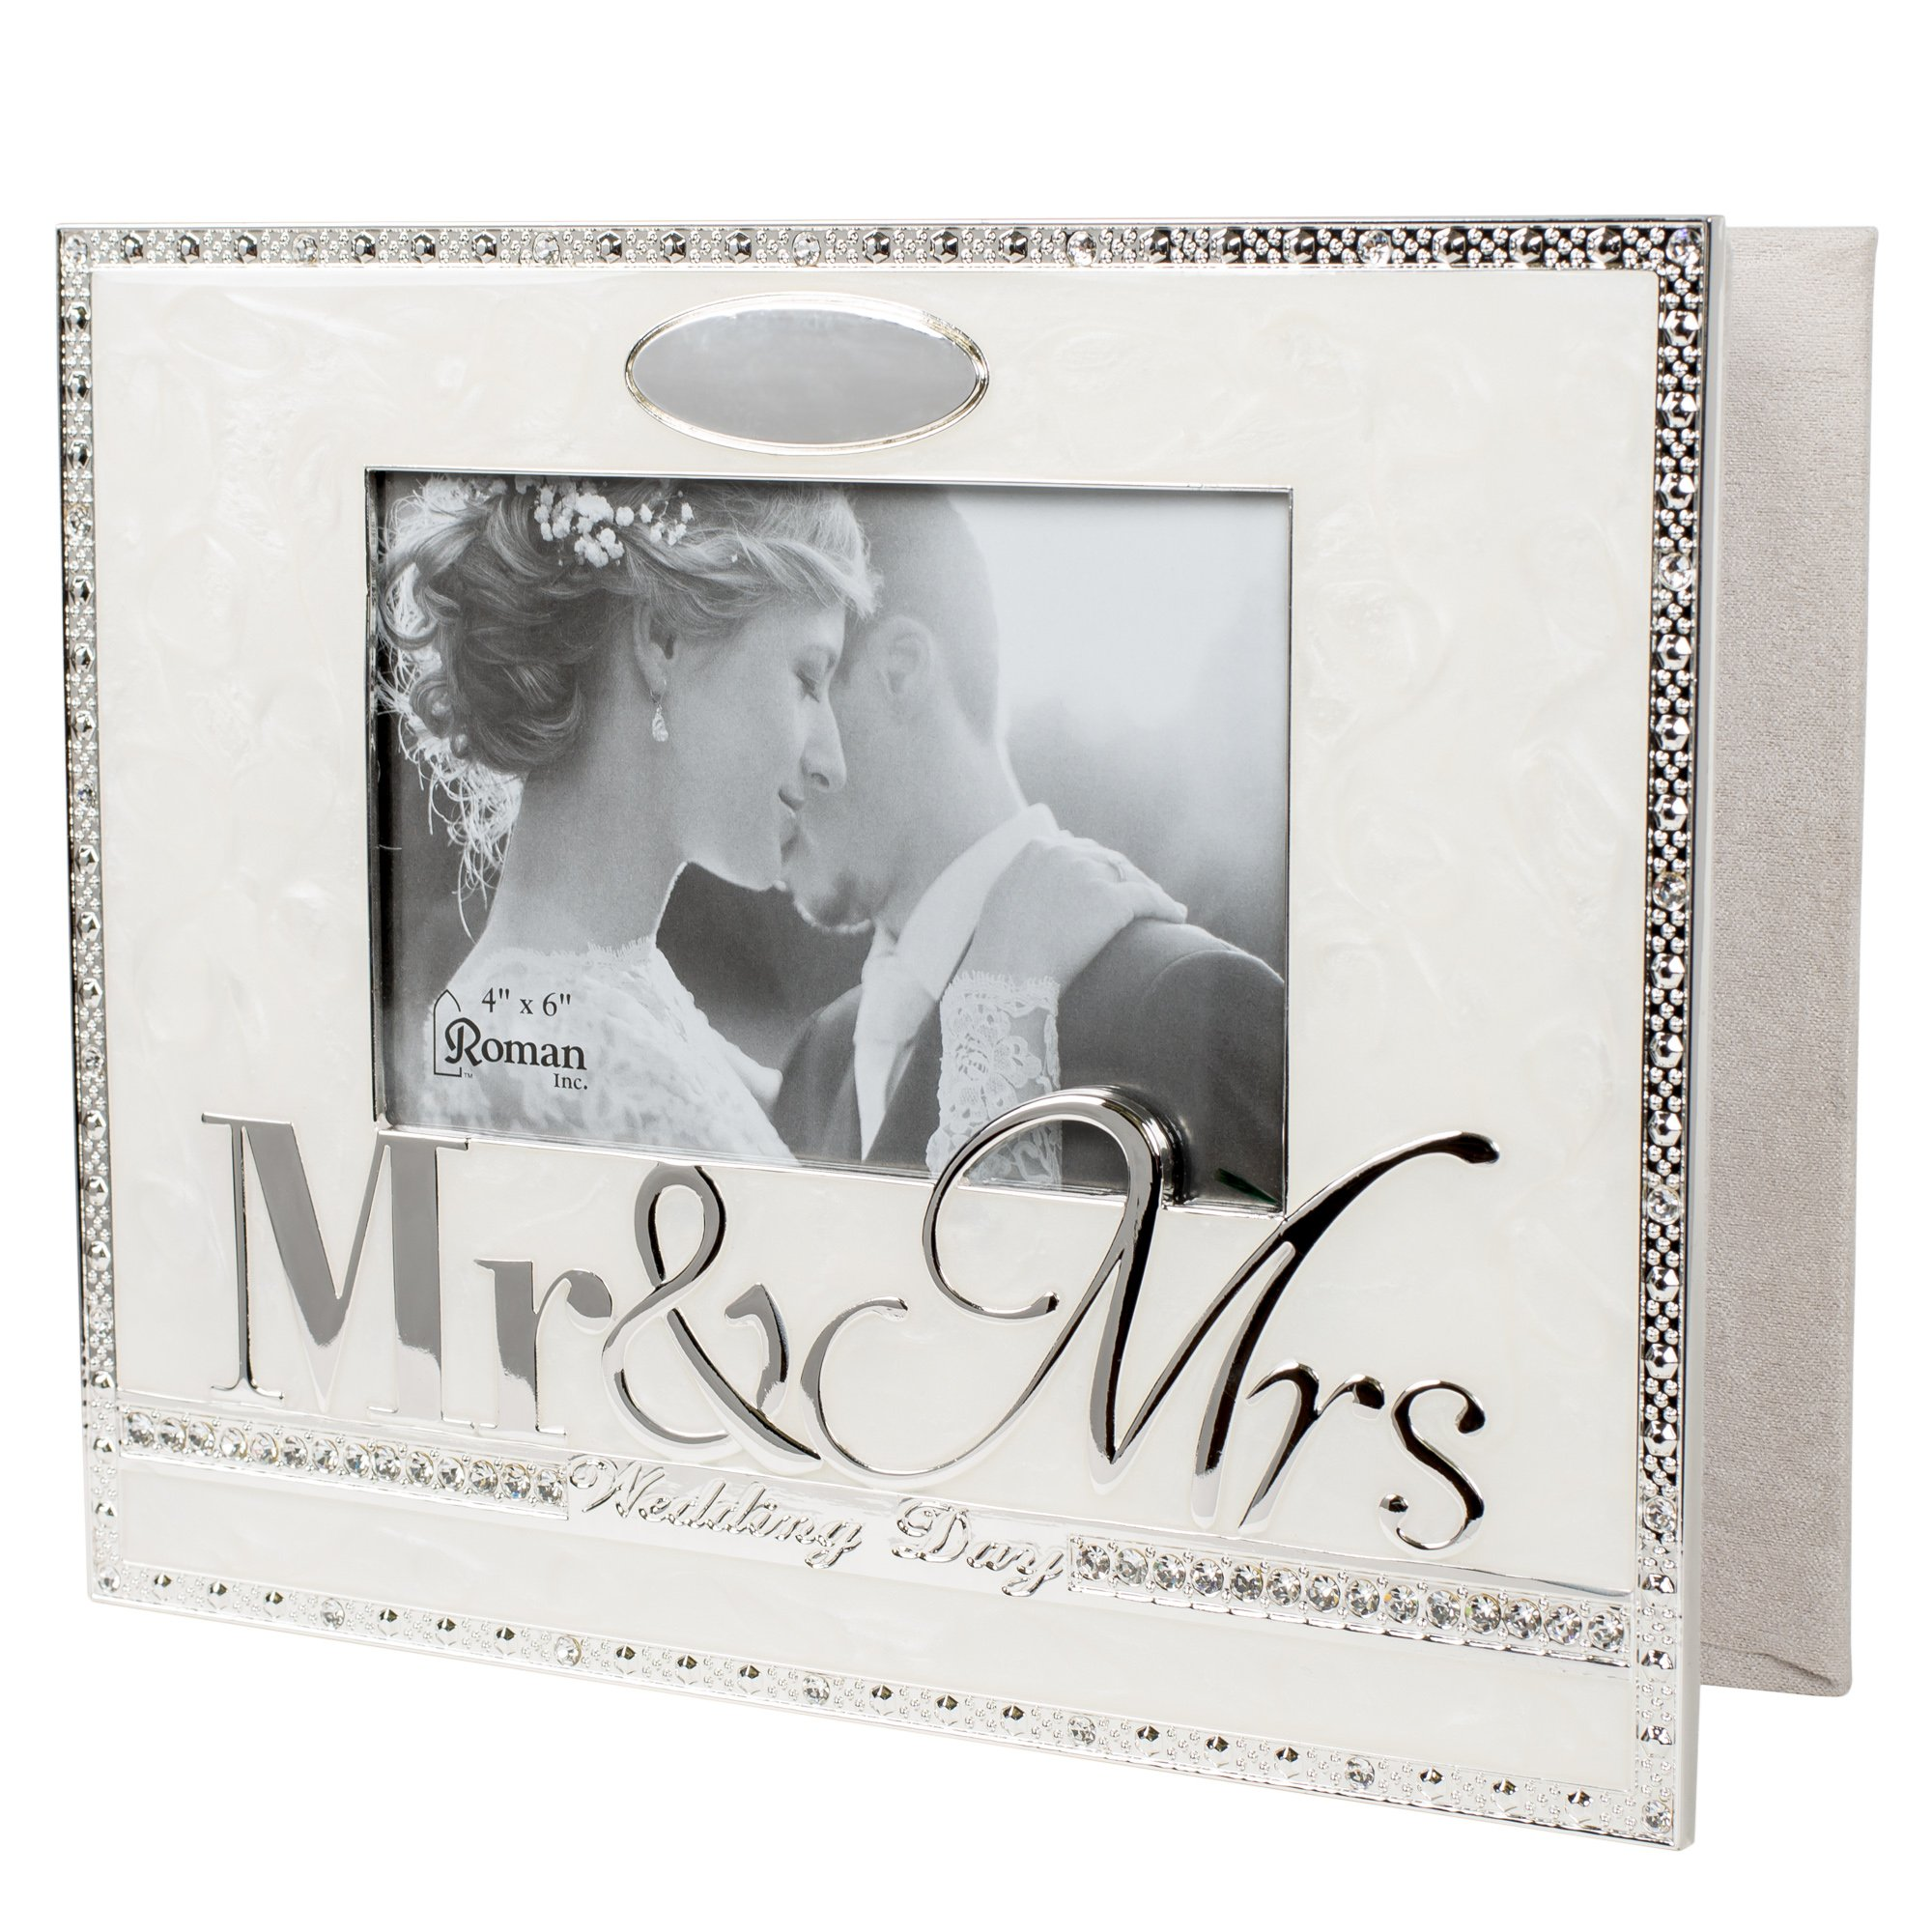 Wedding Day Mr. and Mrs. 8.5 x 10 inch Zinc Alloy Keepsake Photo Album